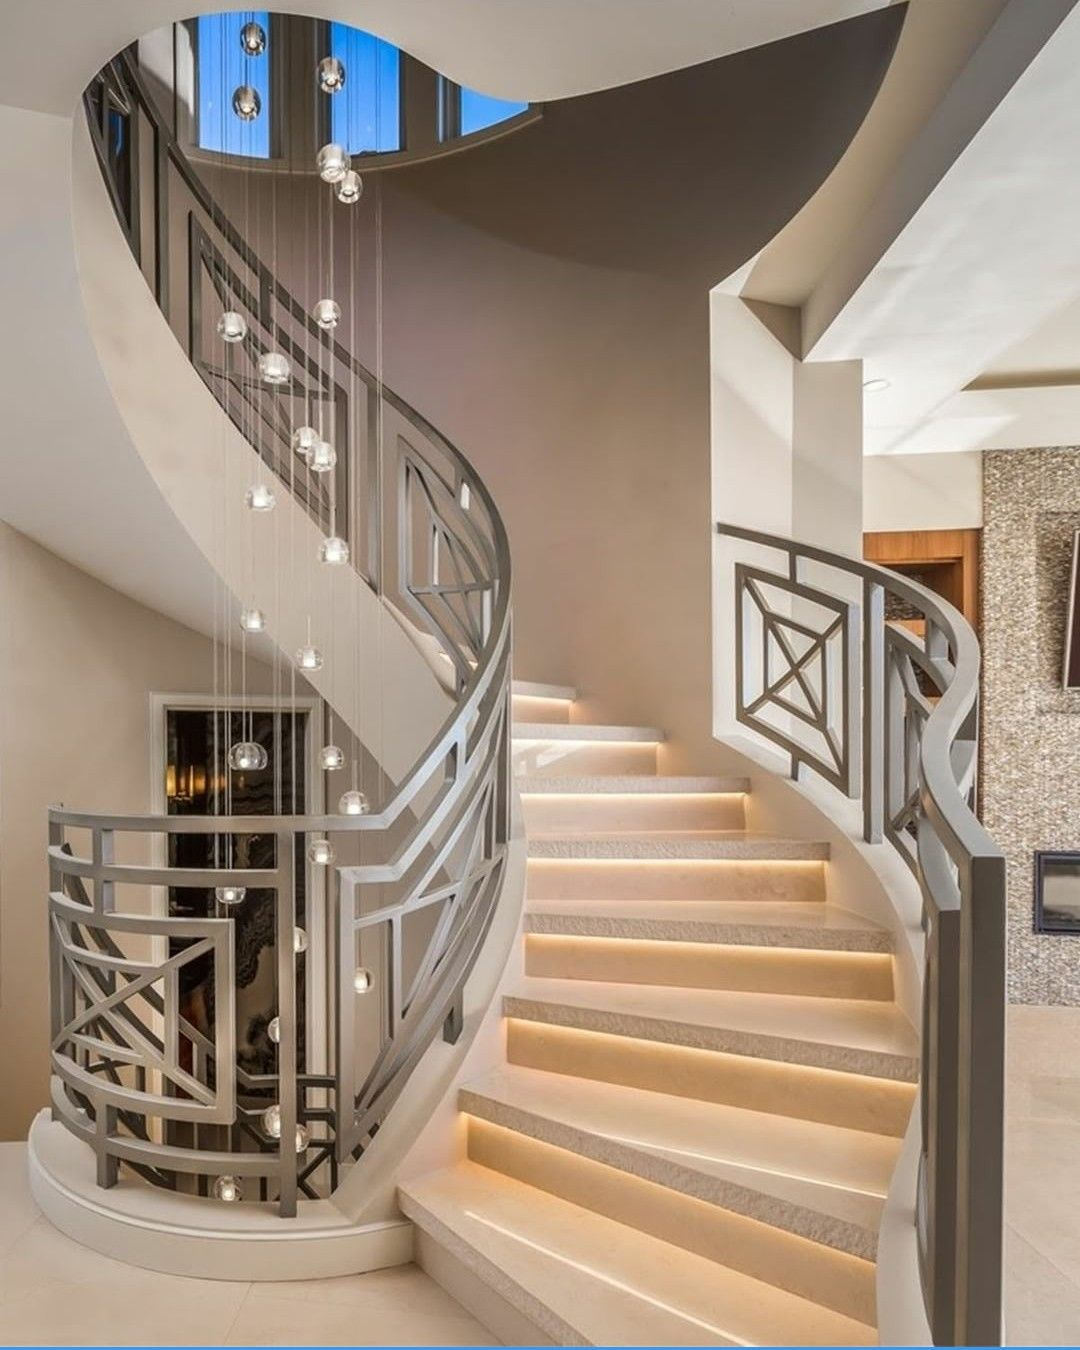 40 Trending Modern Staircase Design Ideas And Stair Handrails: Pin By Juicy Van Gogh On Honey I'm Home